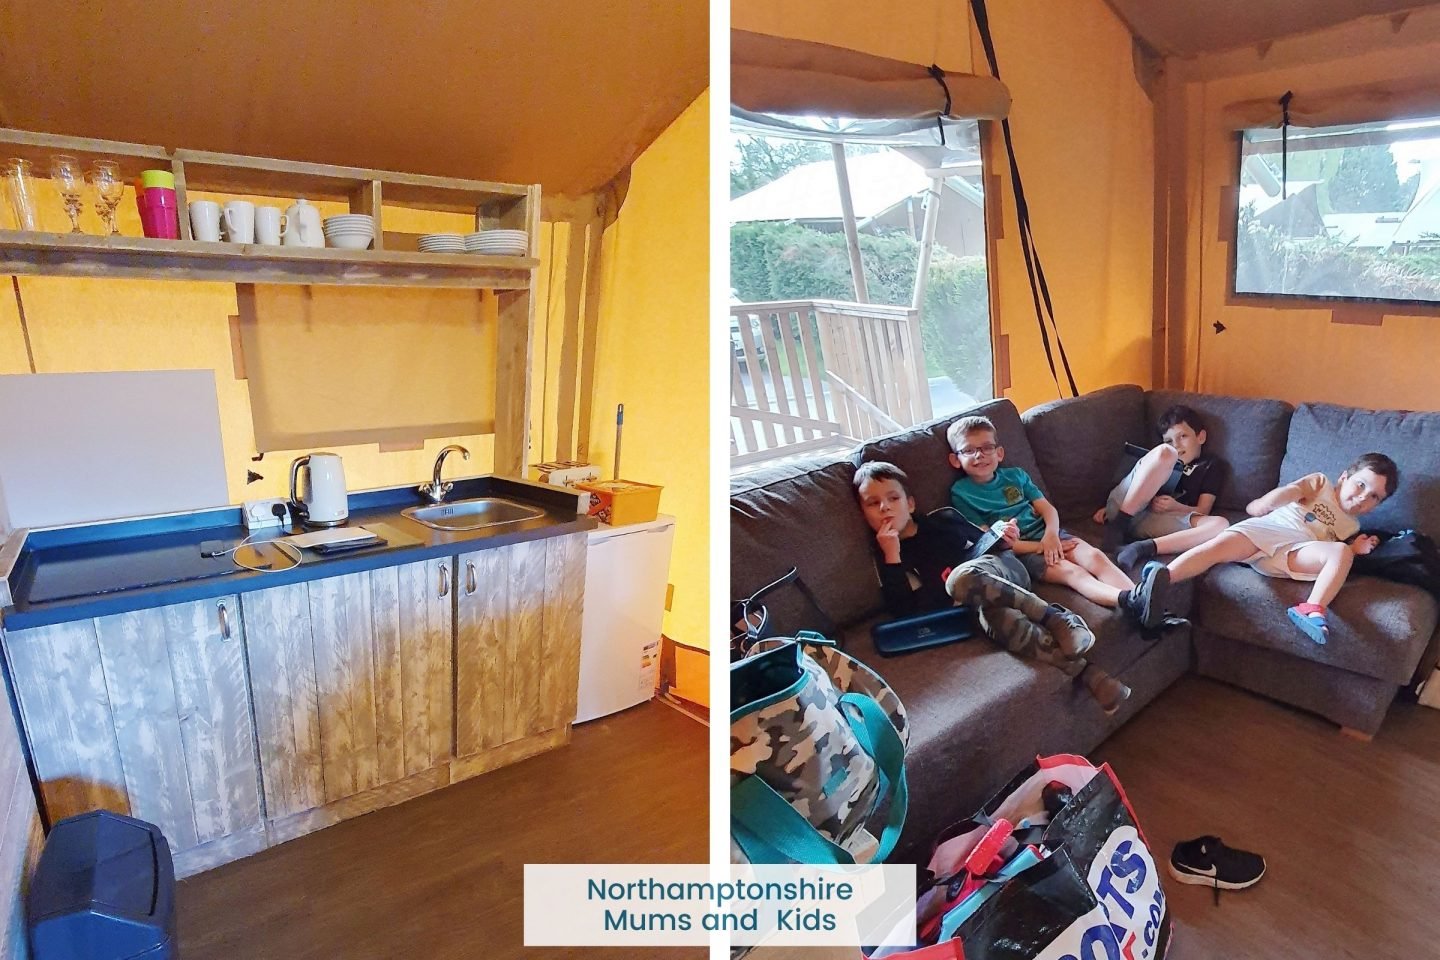 A review of Parkdean Sandford including what activities were available, what the food was like, can you take dogs and general information.